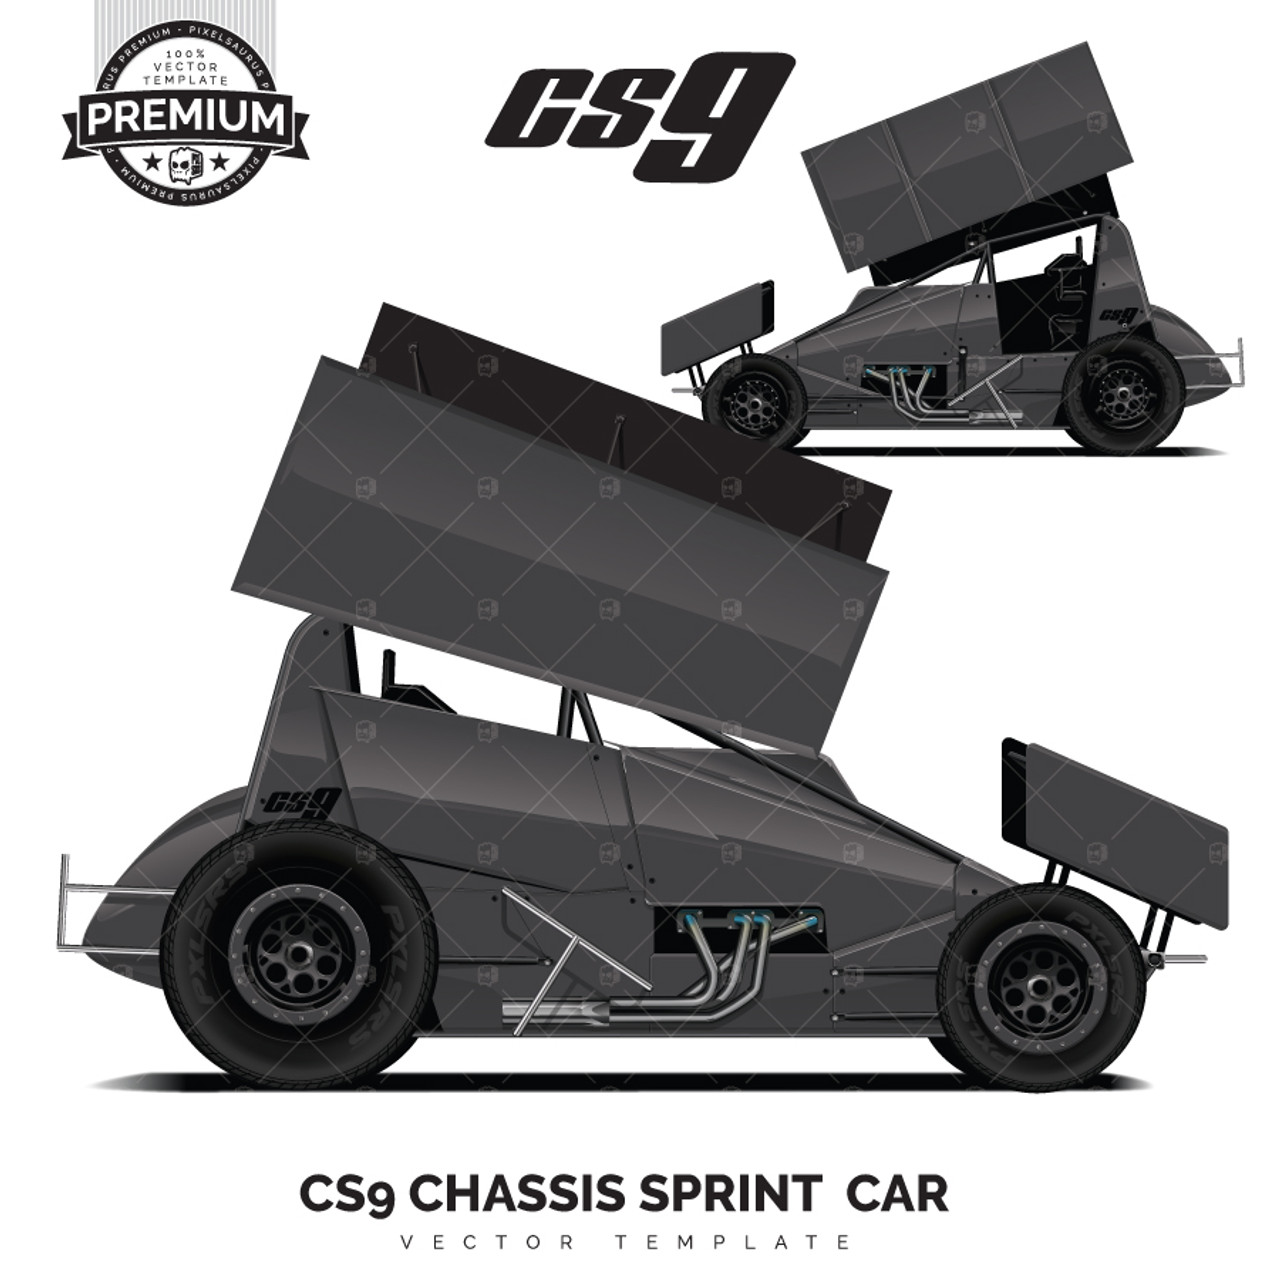 Cs9 Chassis Sprint Car Premium Vector Template Pixelsaurus